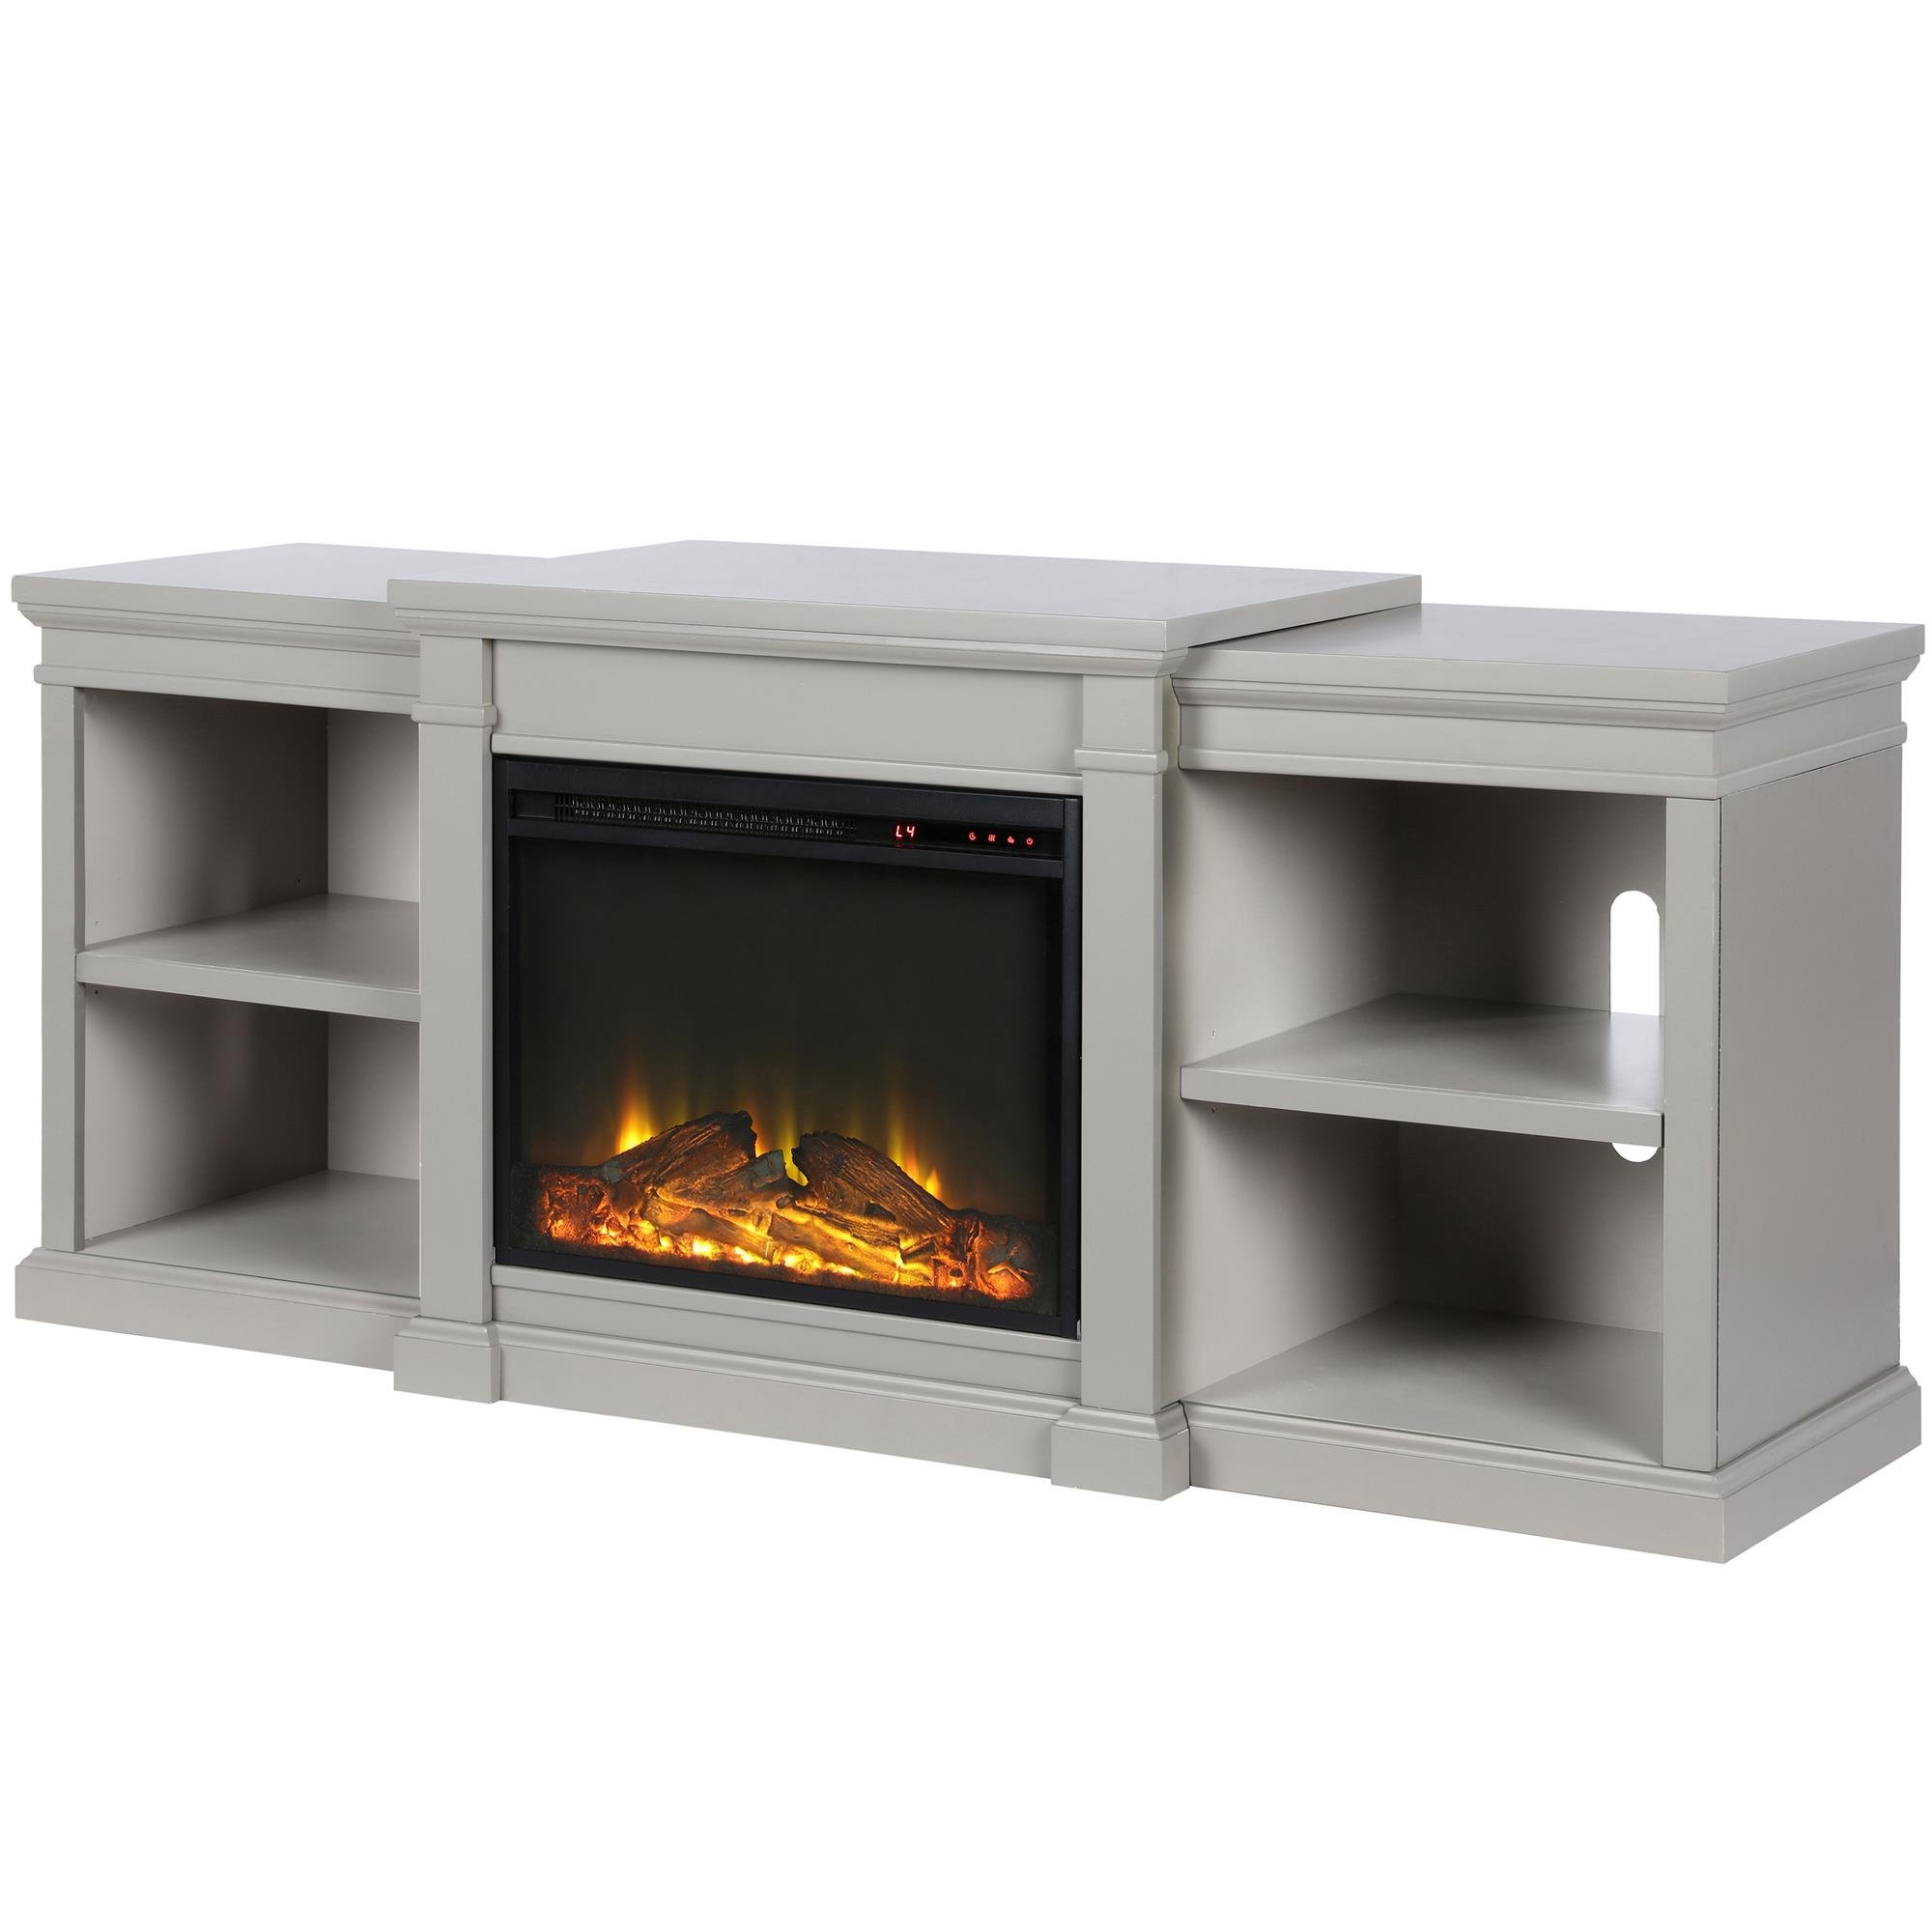 """Ameriwood Home Manchester Electric Fireplace TV Stand for TVs up to 70"""" - Gray"""